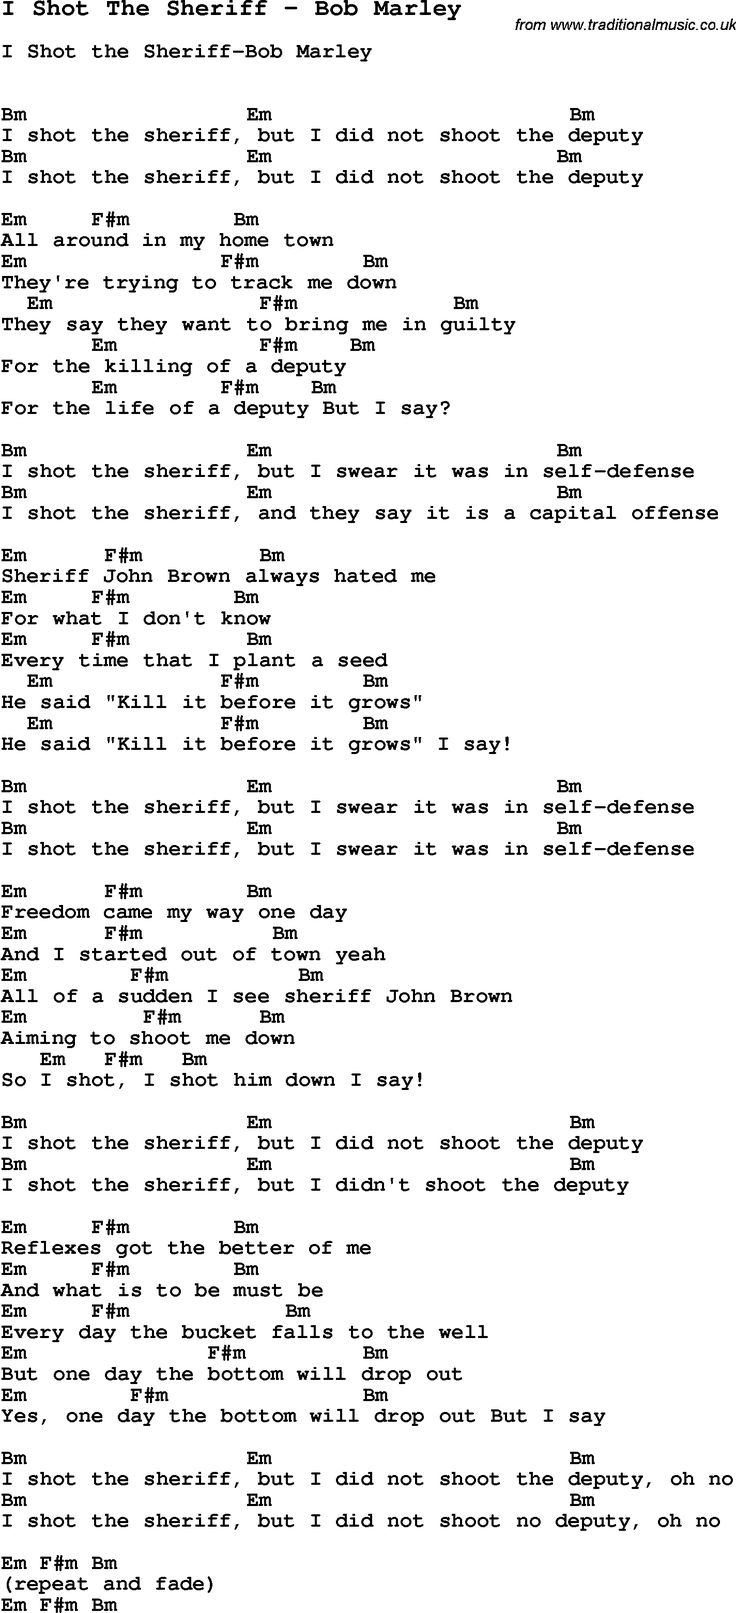 11 best guitar chord charts images on pinterest lyrics music song i shot the sheriff by bob marley song lyric for vocal performance plus accompaniment chords for ukulele guitar banjo etc hexwebz Choice Image